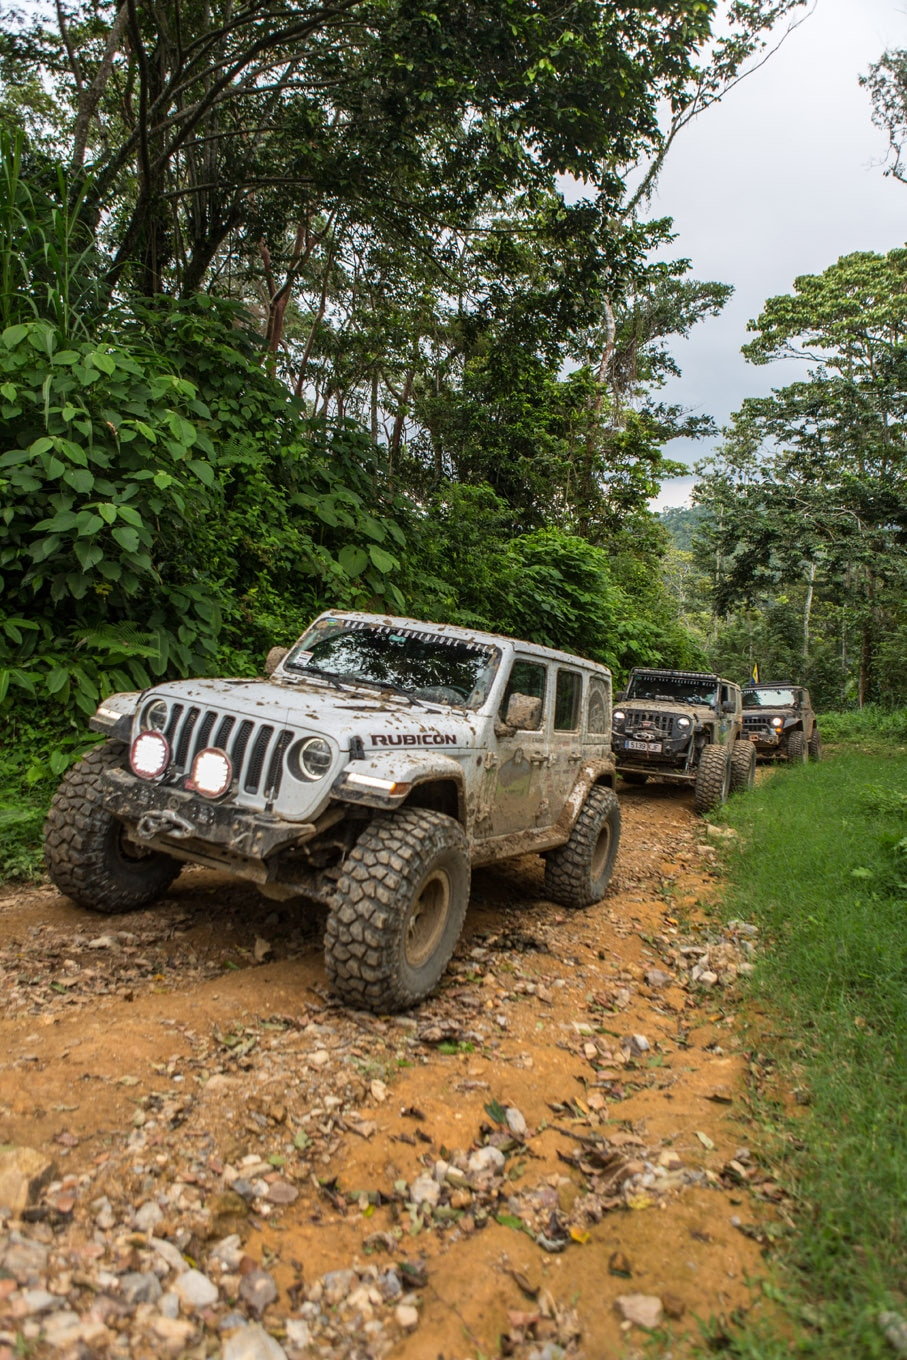 We don't know for certain that this is the first JL in Honduras, but we definitely did not see any other ones. Carlos Flores set the route for RAW in his JL and was often leading the way on the trip, so the ARB Intensity lights and Warn Zeon winch were both regularly put to use.